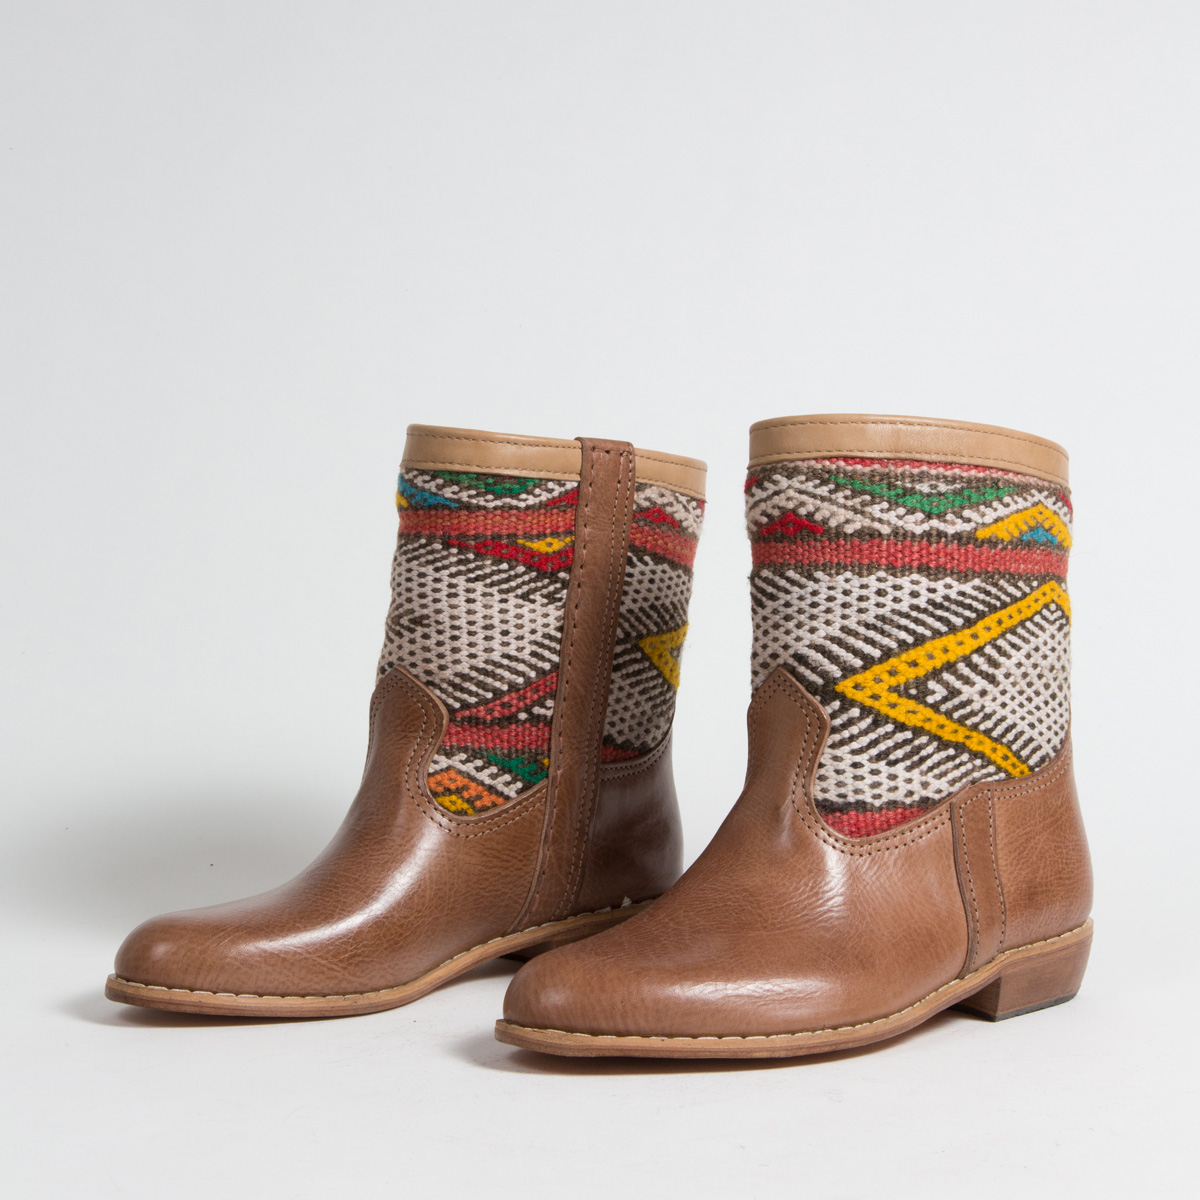 Bottines Kilim cuir mababouche artisanales (Réf. MCH3-38)